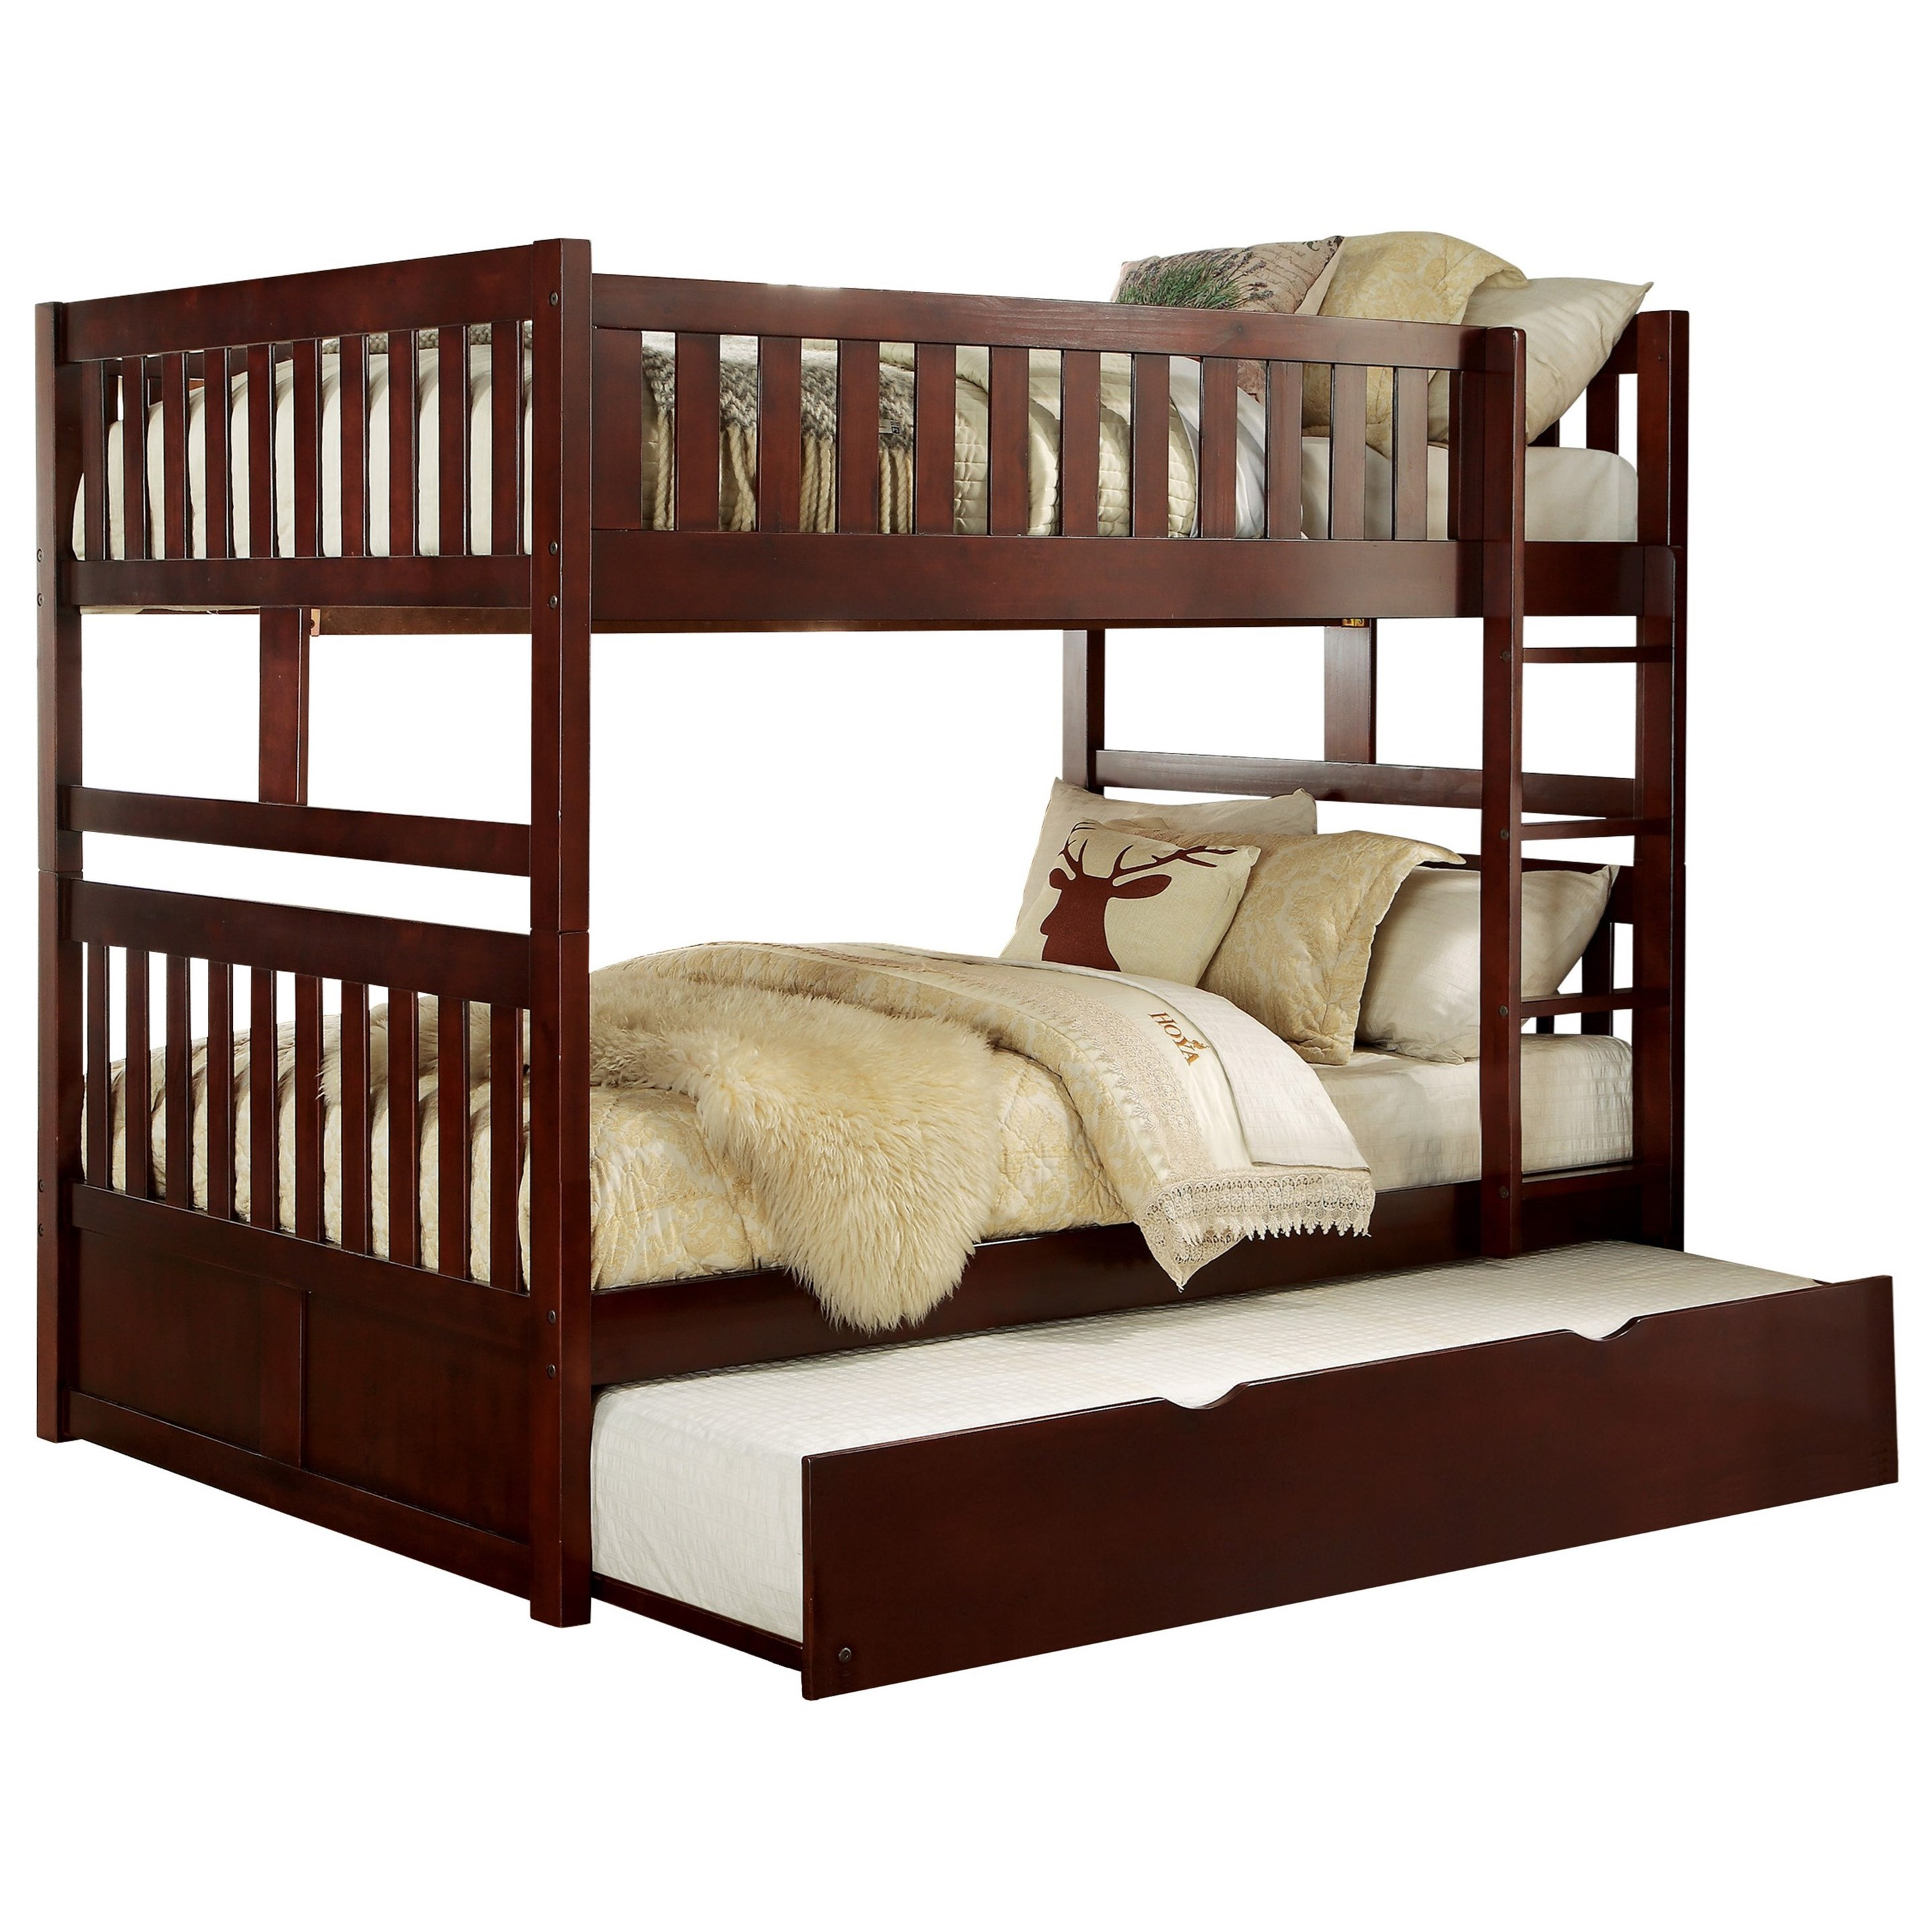 Cherry Full Over Full Trundle Bunk Bed by Home Style at Walker's Furniture